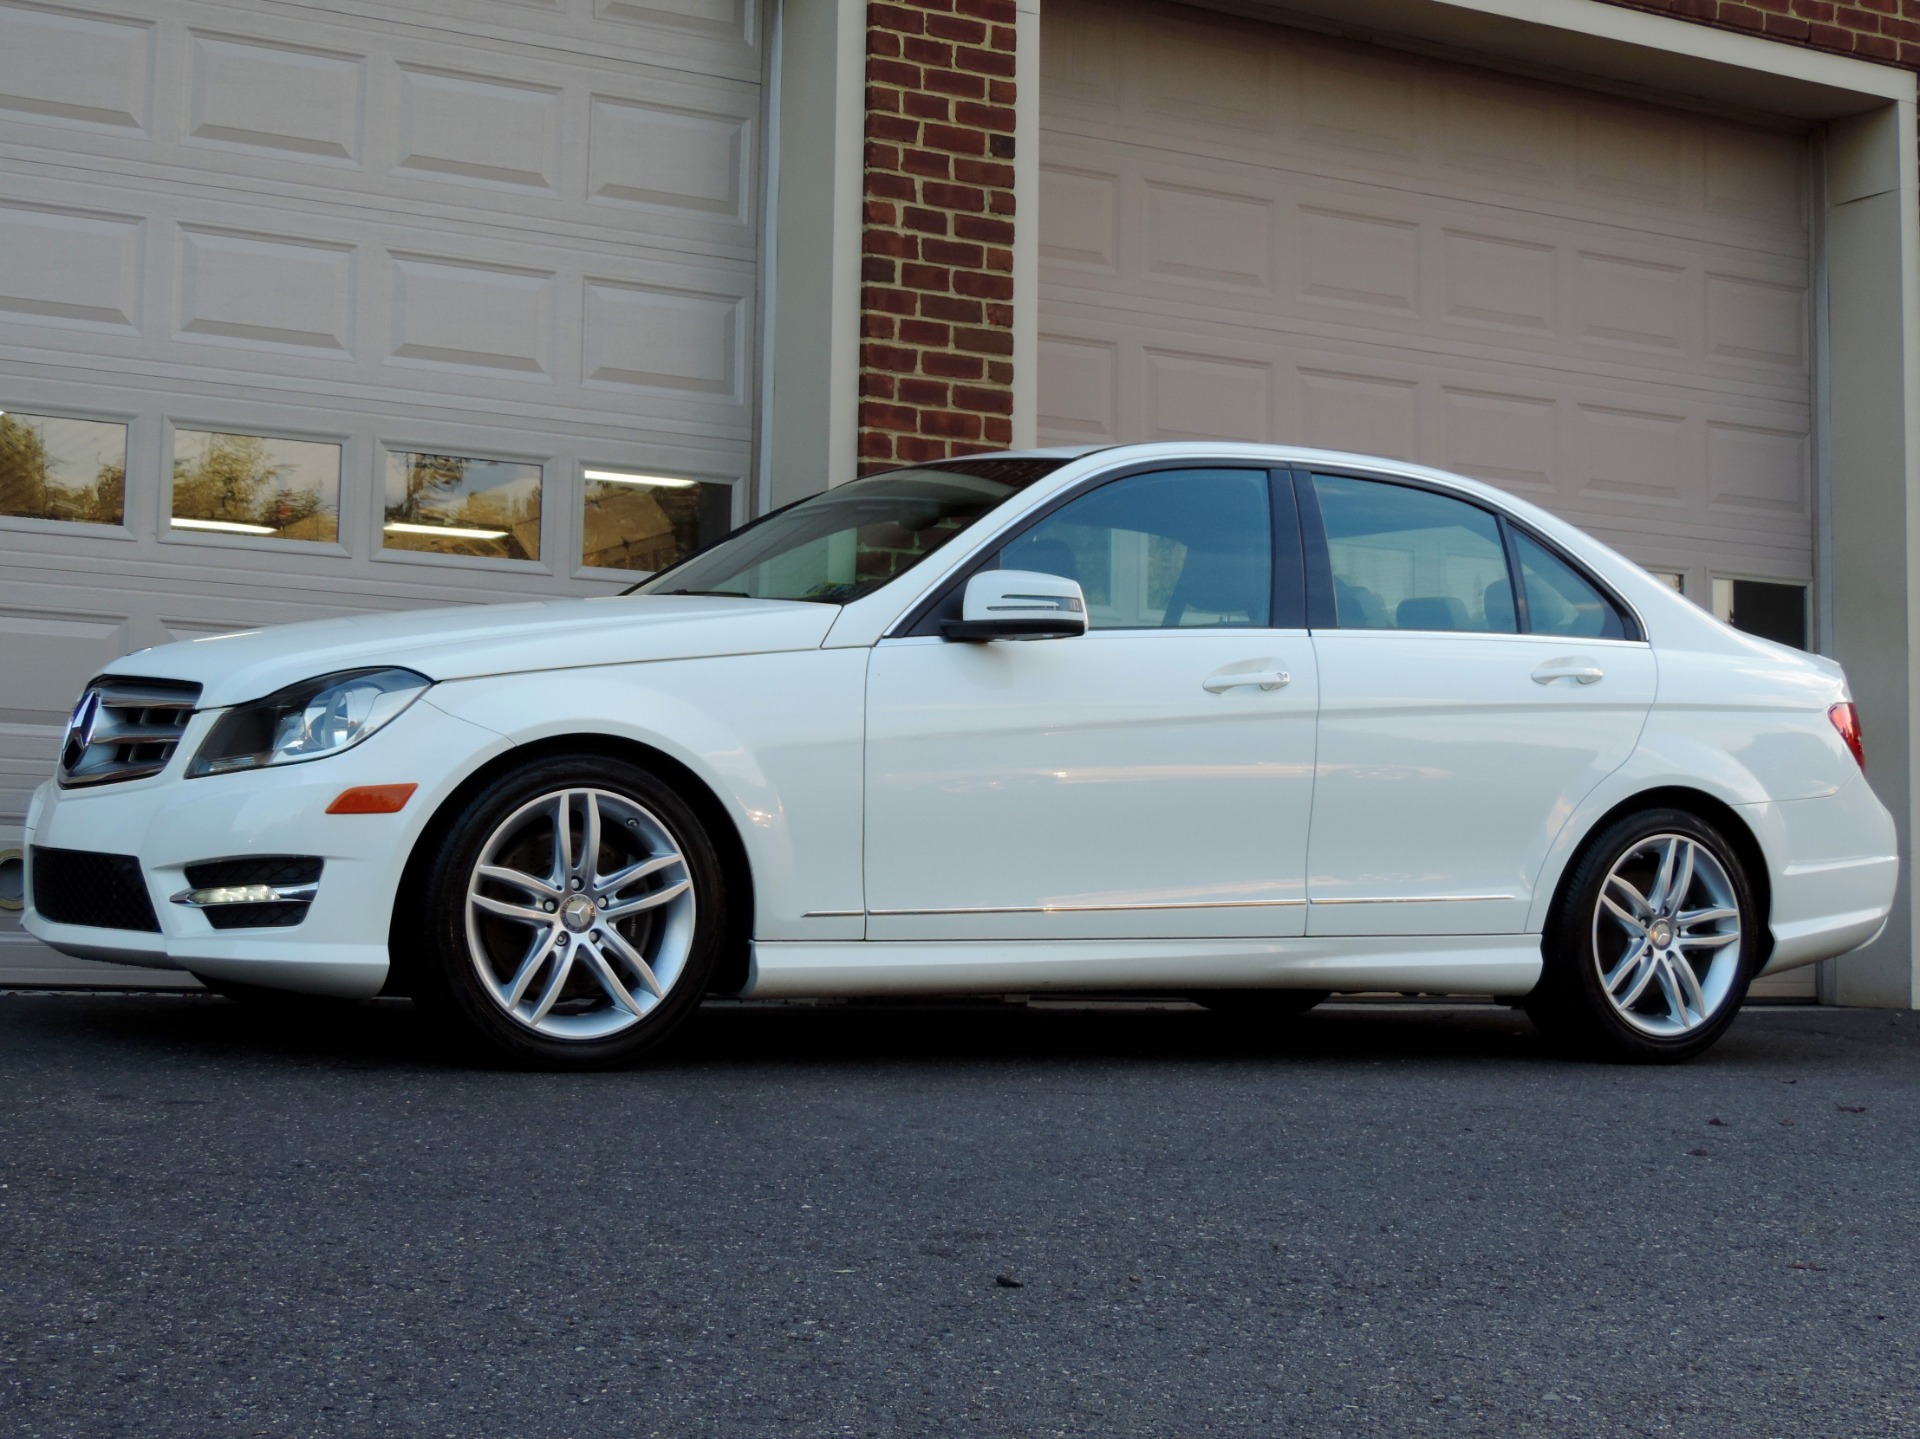 2013 mercedes benz c class c 300 sport 4matic stock 245073 for sale near edgewater park nj. Black Bedroom Furniture Sets. Home Design Ideas